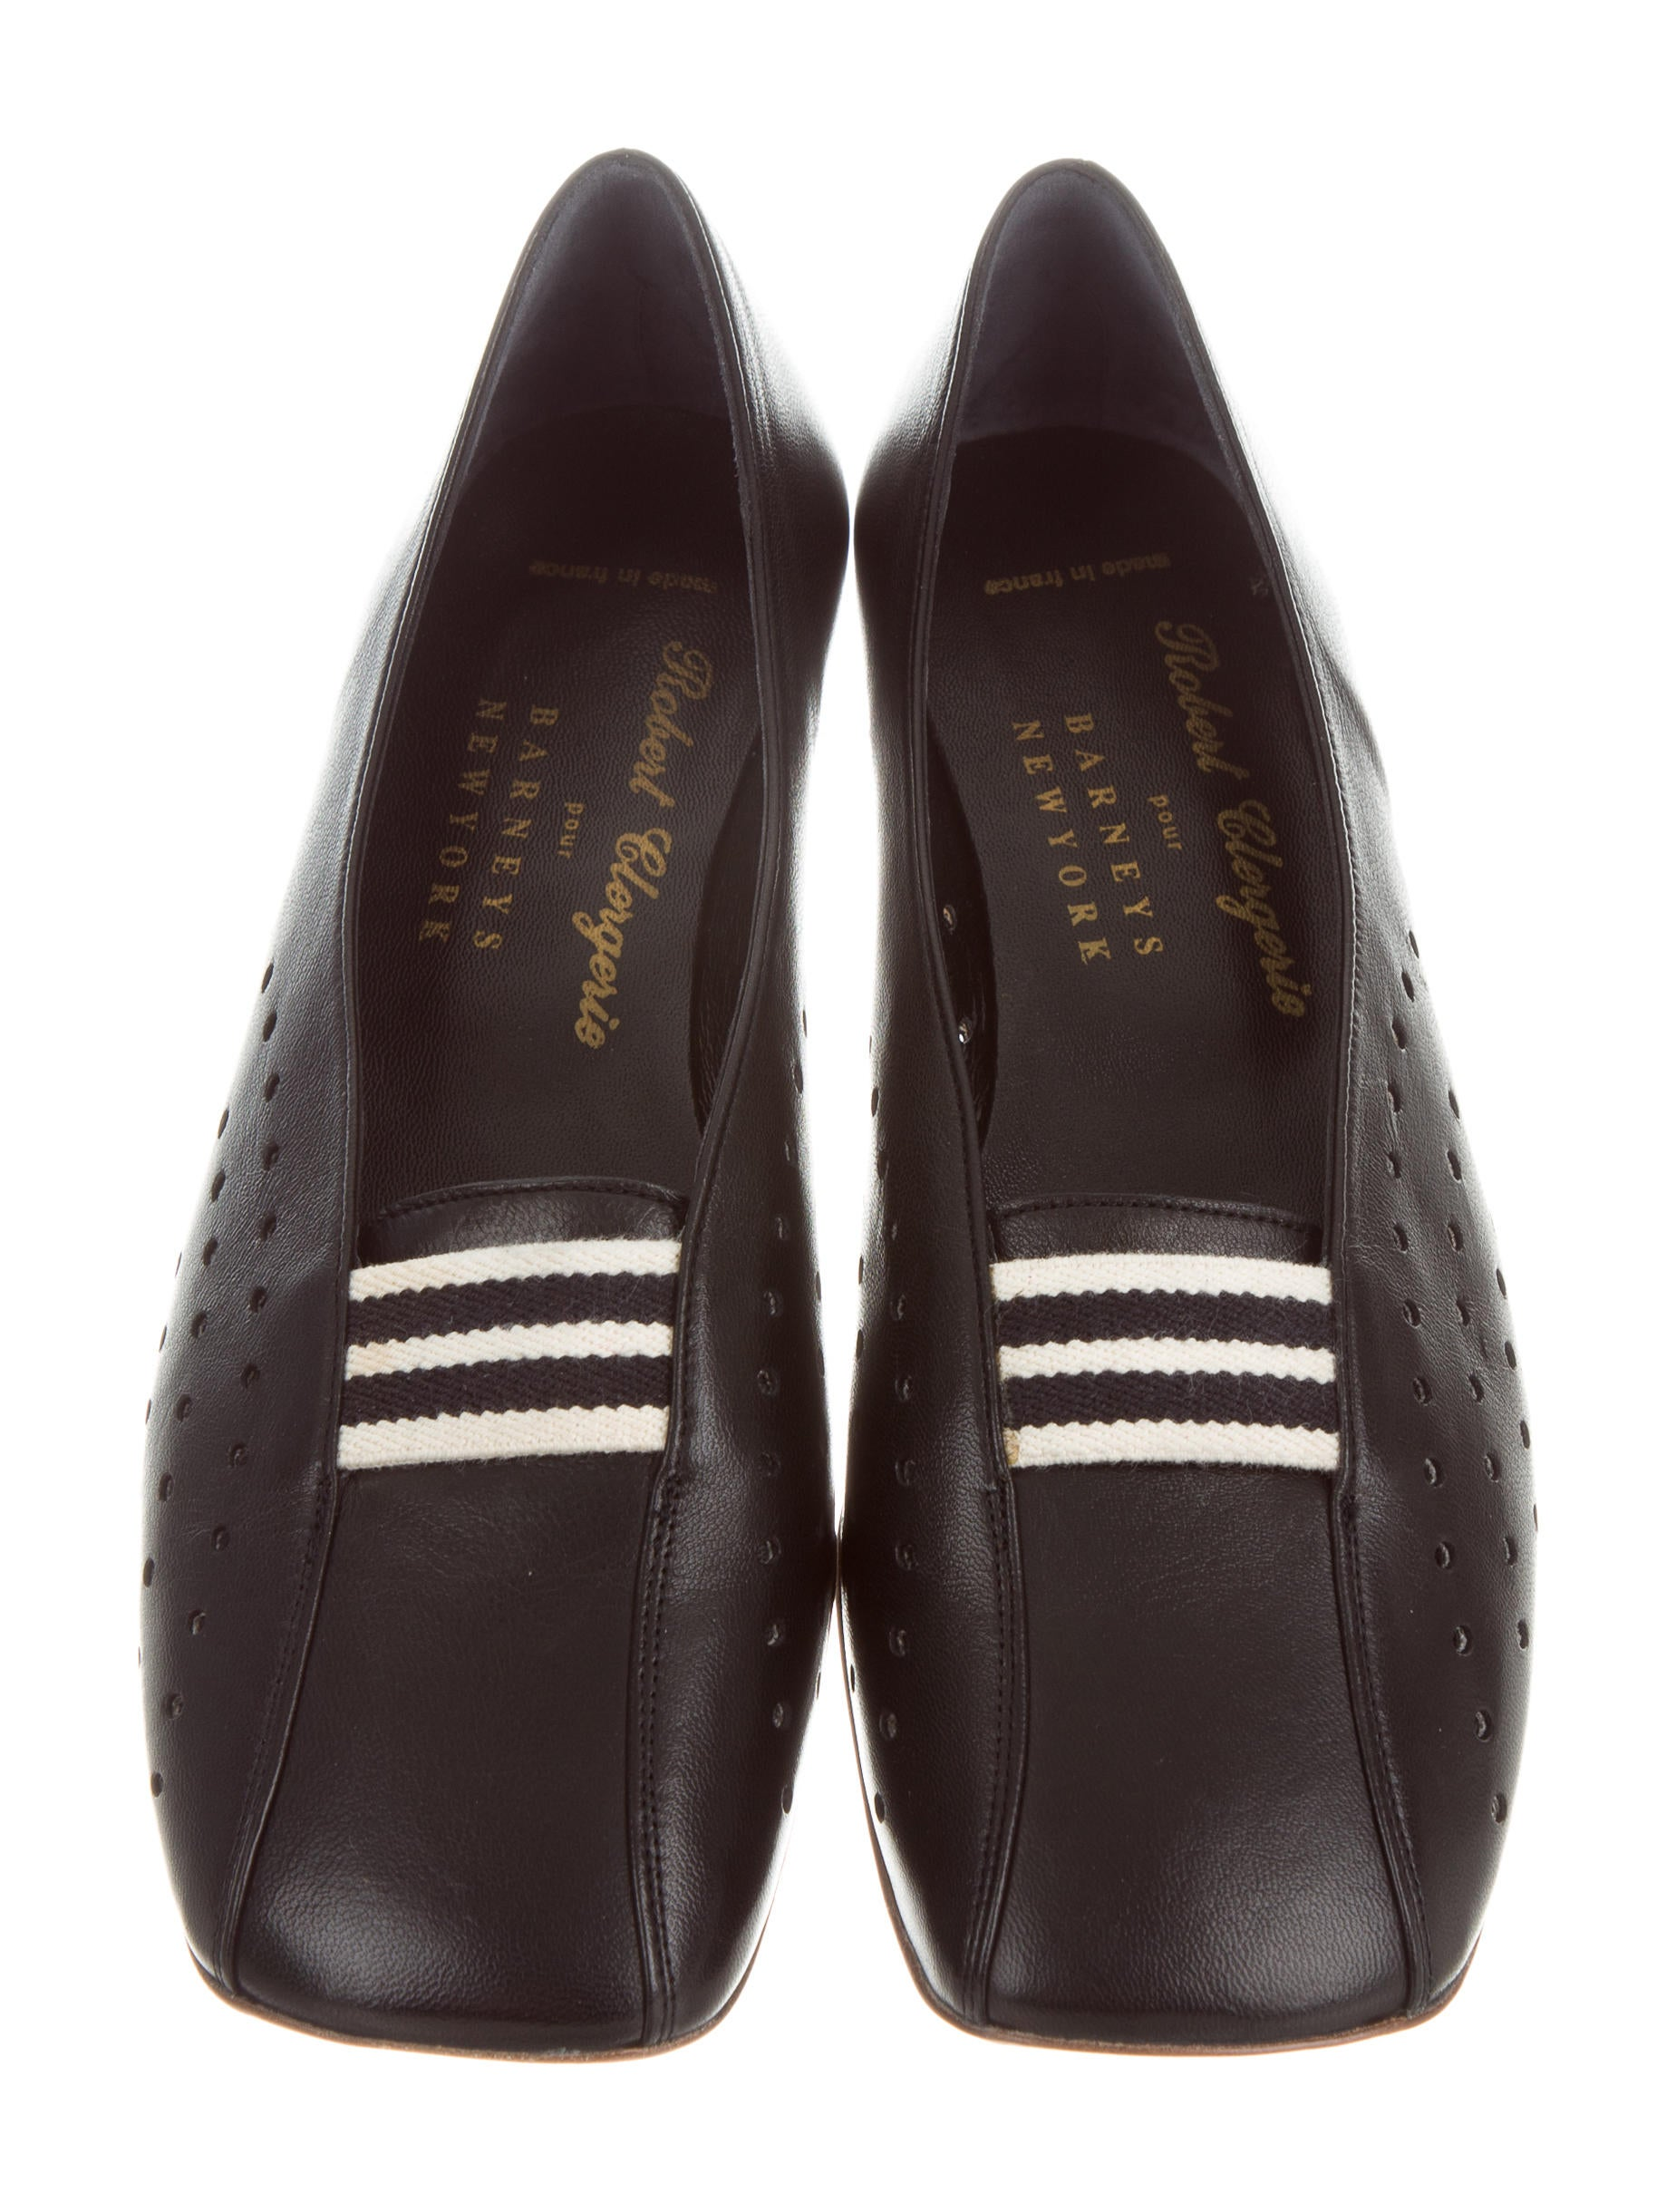 Robert Clergerie Square-Toe Leather Flats w/ Tags nicekicks for sale cheap sale comfortable visit qNzCXbrMvh